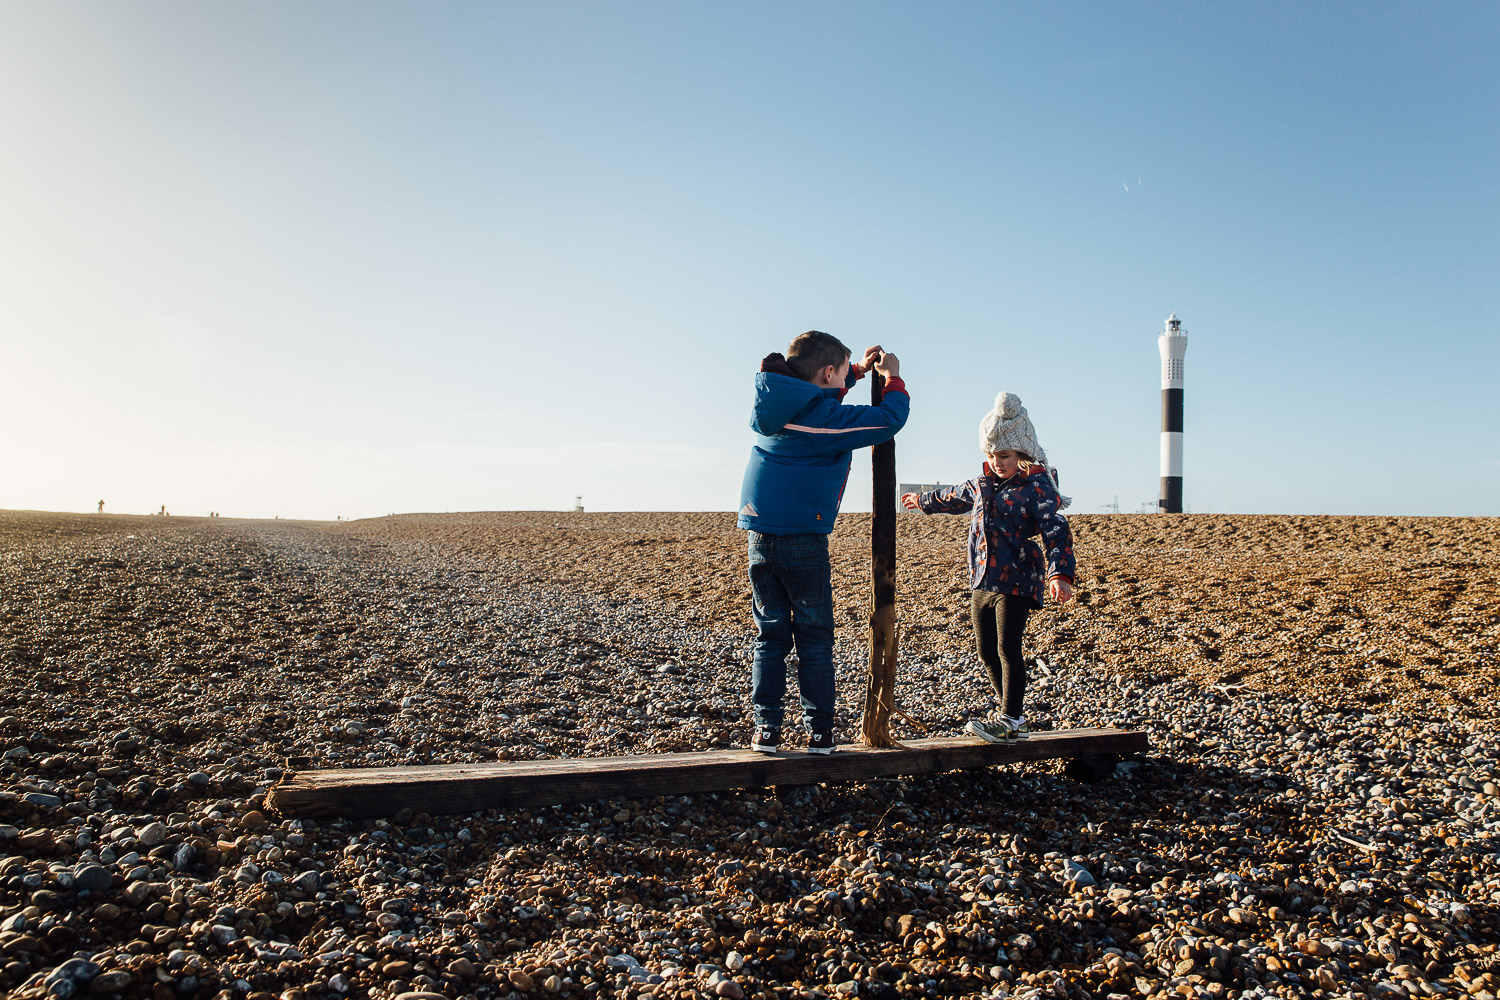 KIDS CHILDREN PLAYING ON DUNGENESS BEACH BOATS PHOTOGRAPHER FAMILY PHOTOGRAPHY LIGHTHOUSE